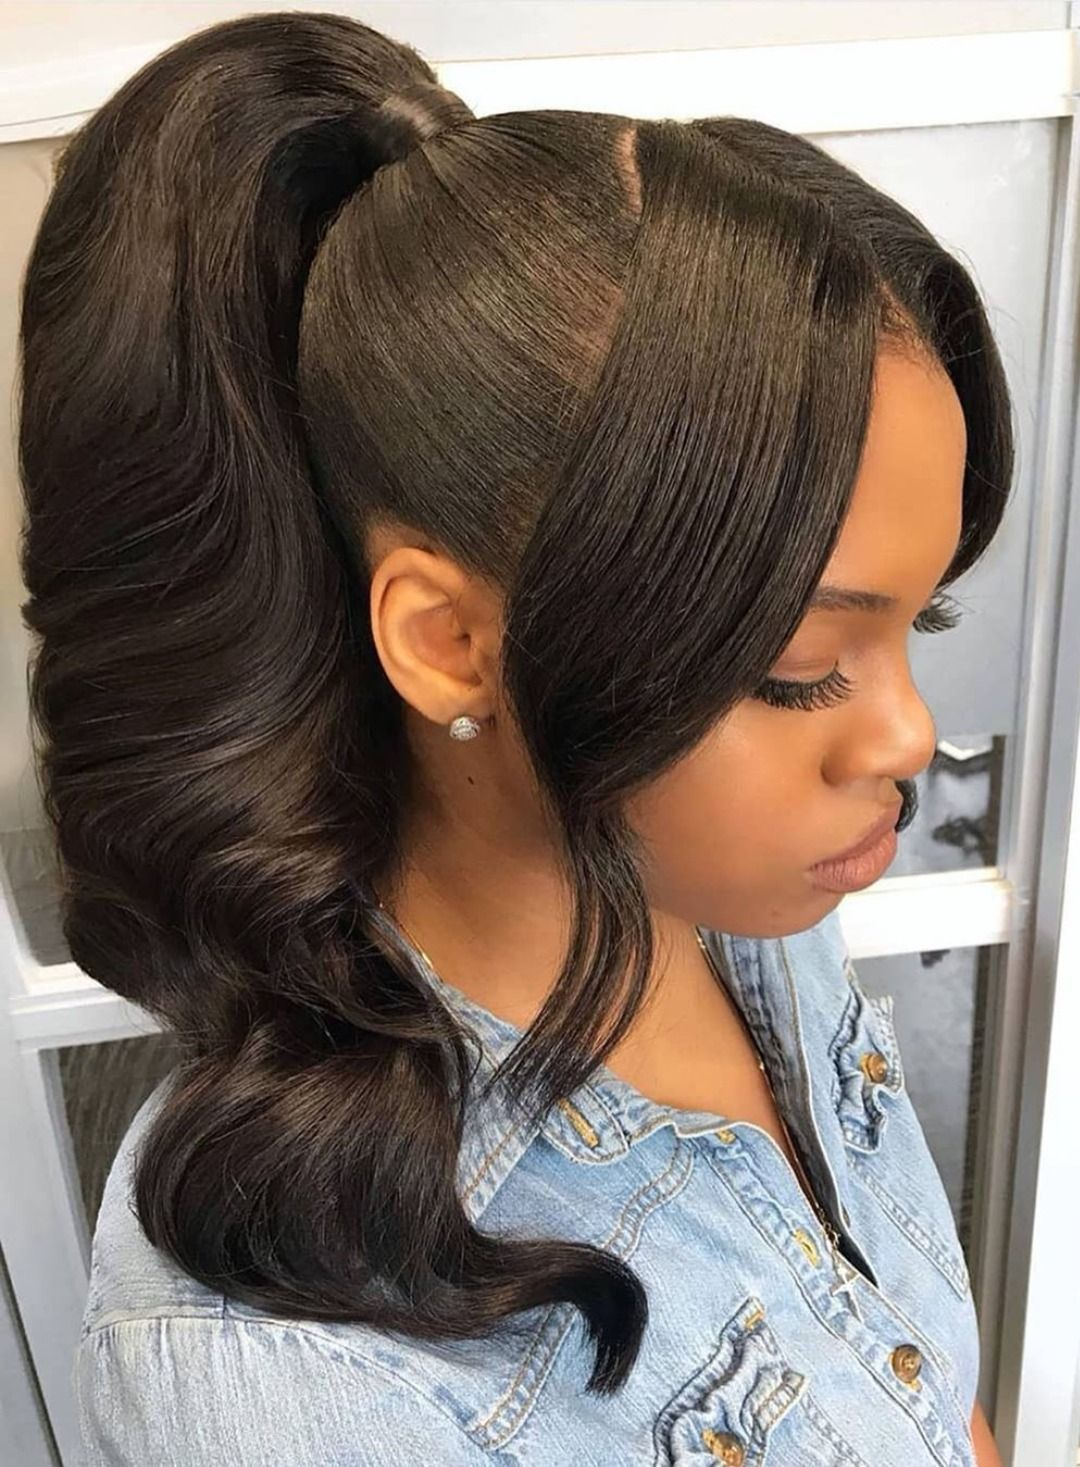 Gorgeous high ponytail 🔥😍who wanna rock it?🤗